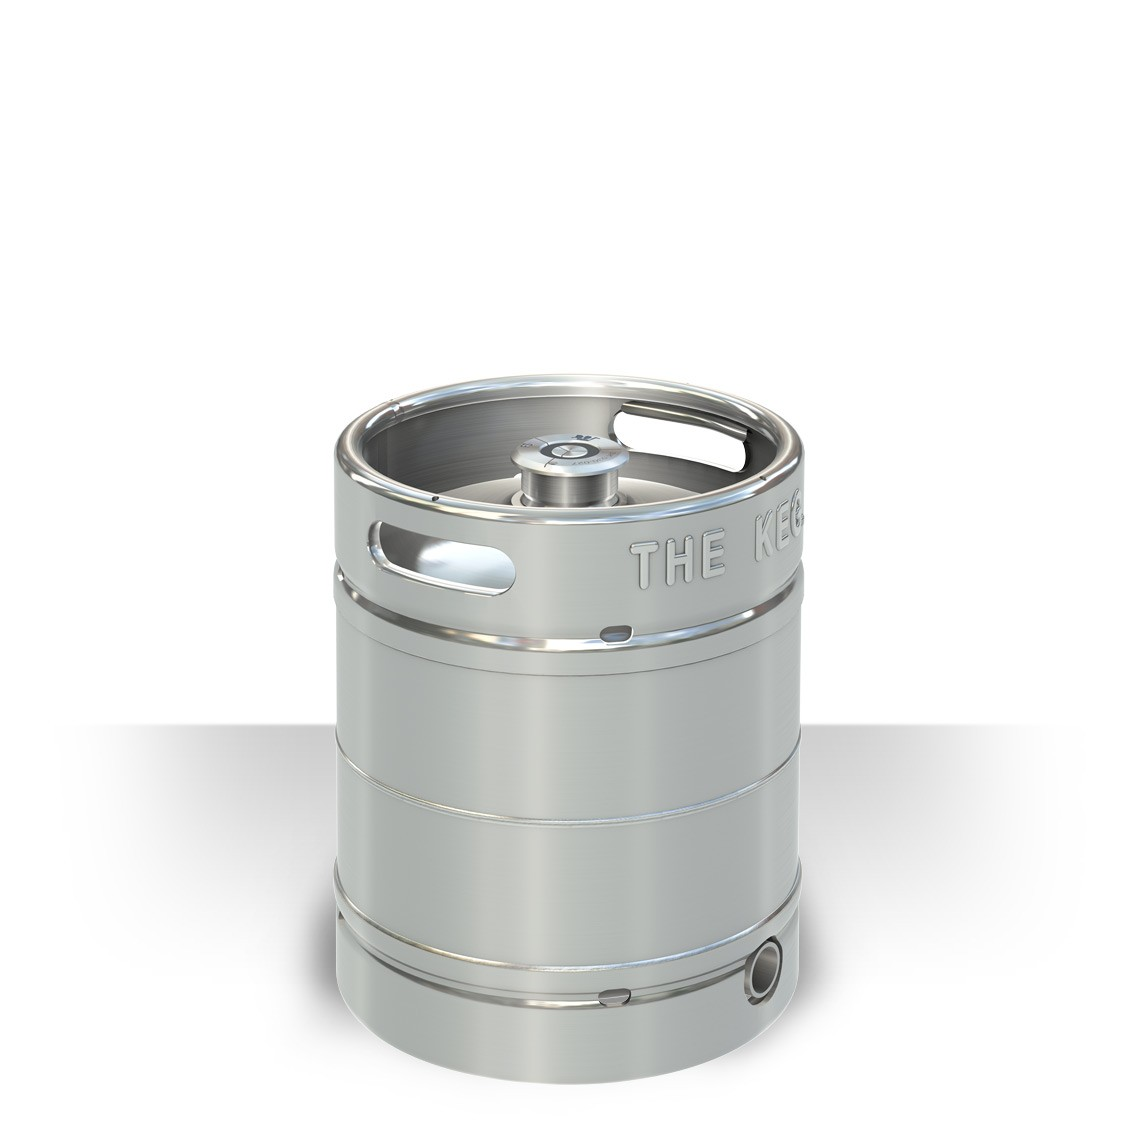 Party keg for special occasions